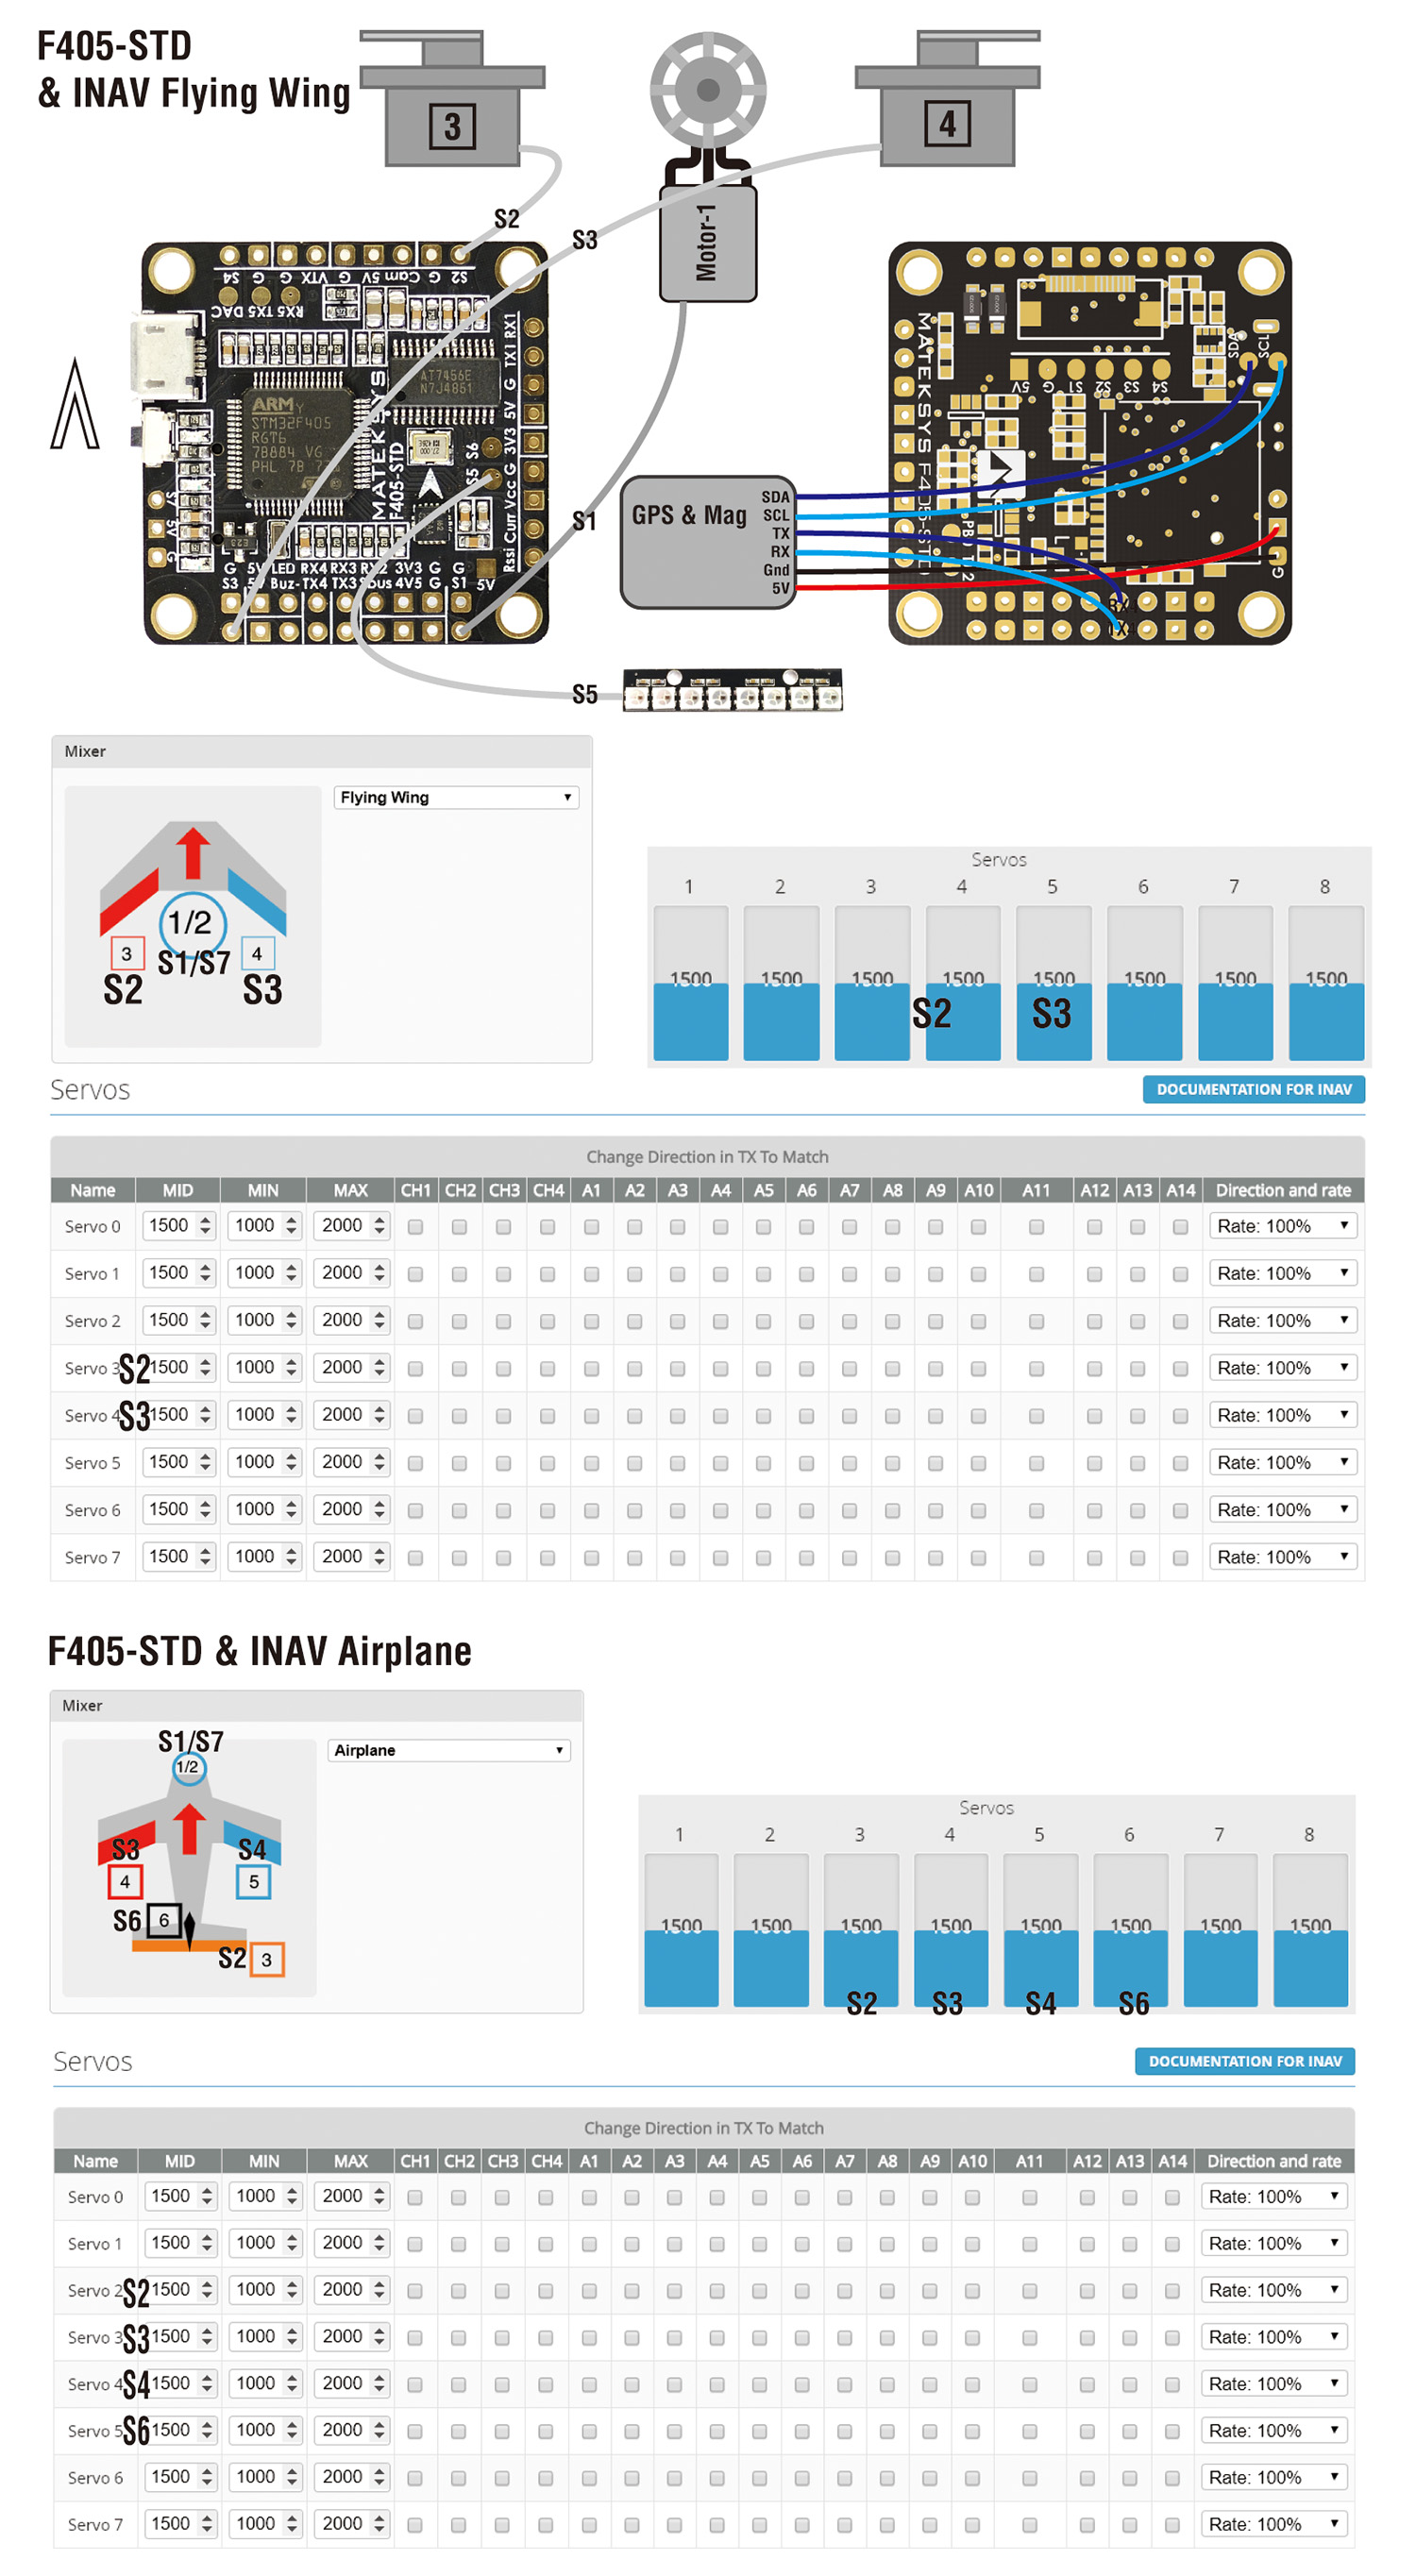 F405-STD_INAV1 Usb Wiring Diagram on usb charging diagram, usb schematic diagram, usb connectors diagram, usb wire connections, usb controller diagram, usb outlets diagram, usb strip, usb block diagram, usb outlet adapter, usb pinout, usb switch, usb cable, usb color diagram, usb wire schematic, usb socket diagram, circuit diagram, usb motherboard diagram, usb computer diagram, usb soldering diagram, usb splitter diagram,